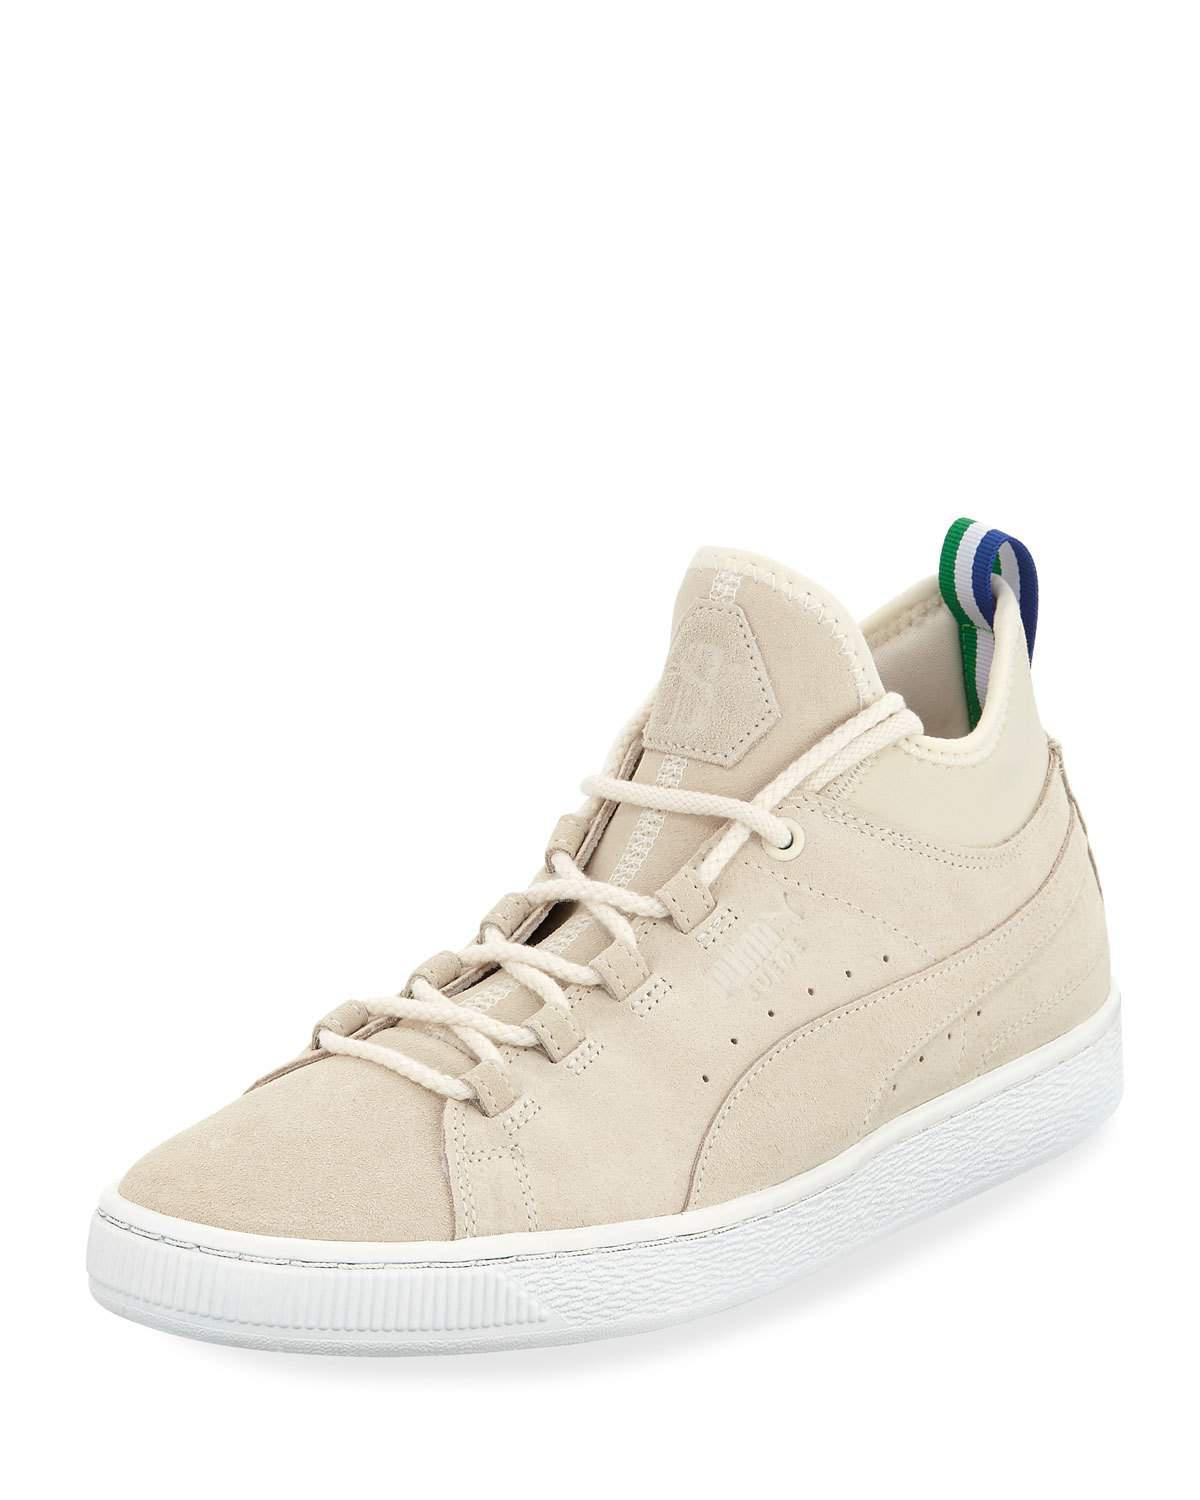 fc36387fcce Lyst - Puma Men s X Big Sean Suede Mid-top Sneakers in White for Men